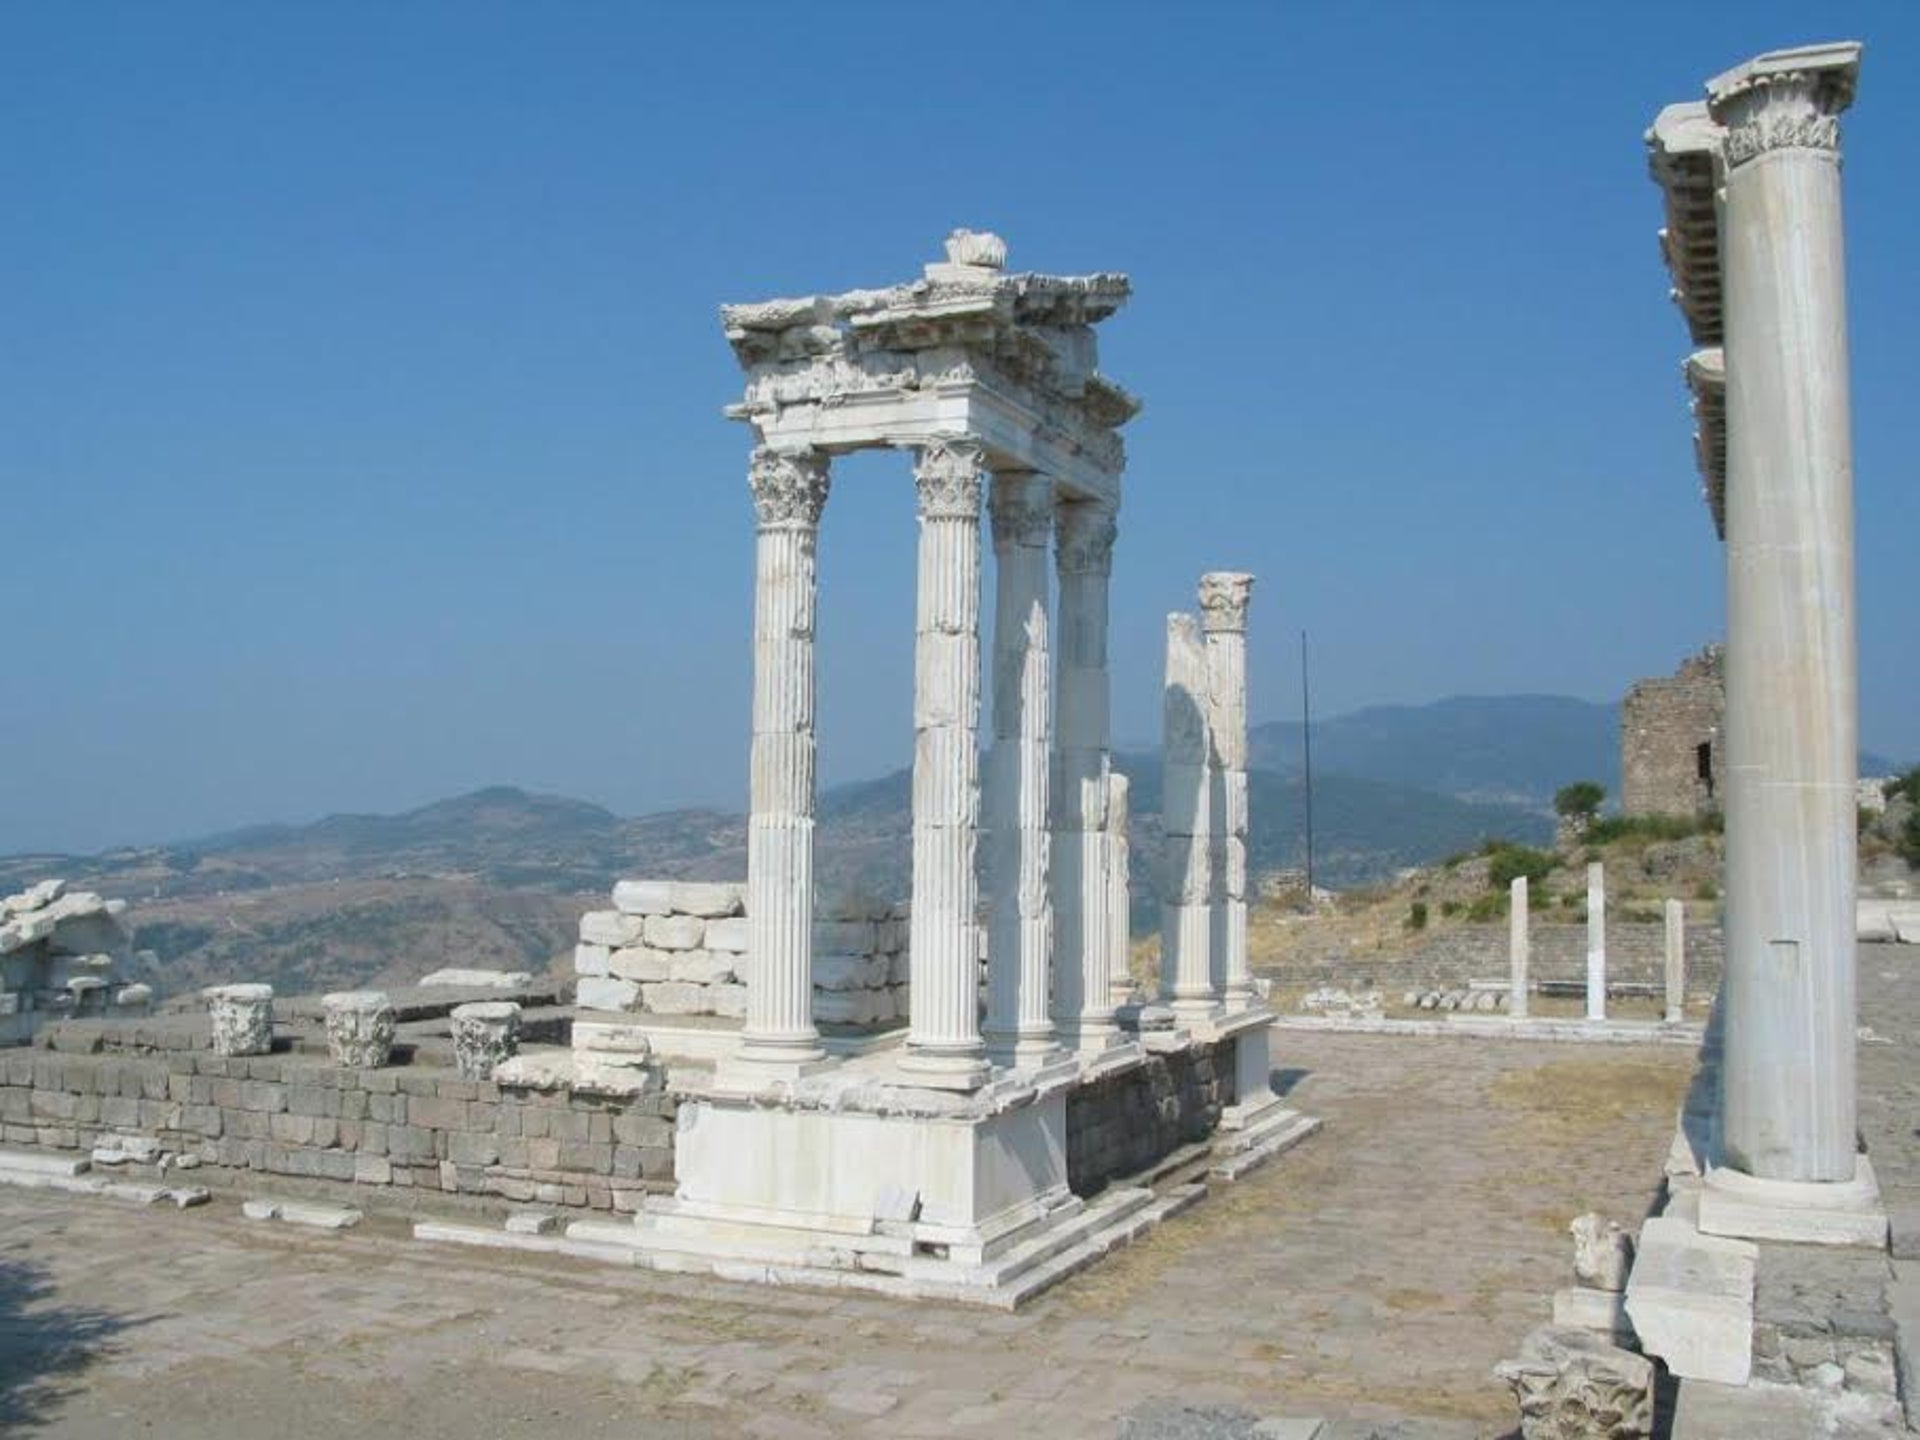 Atop Pergamon´s city-hill: The Trajanum with temple terrace. The Attalids were masters of creating awe through aesthetics in architecture.